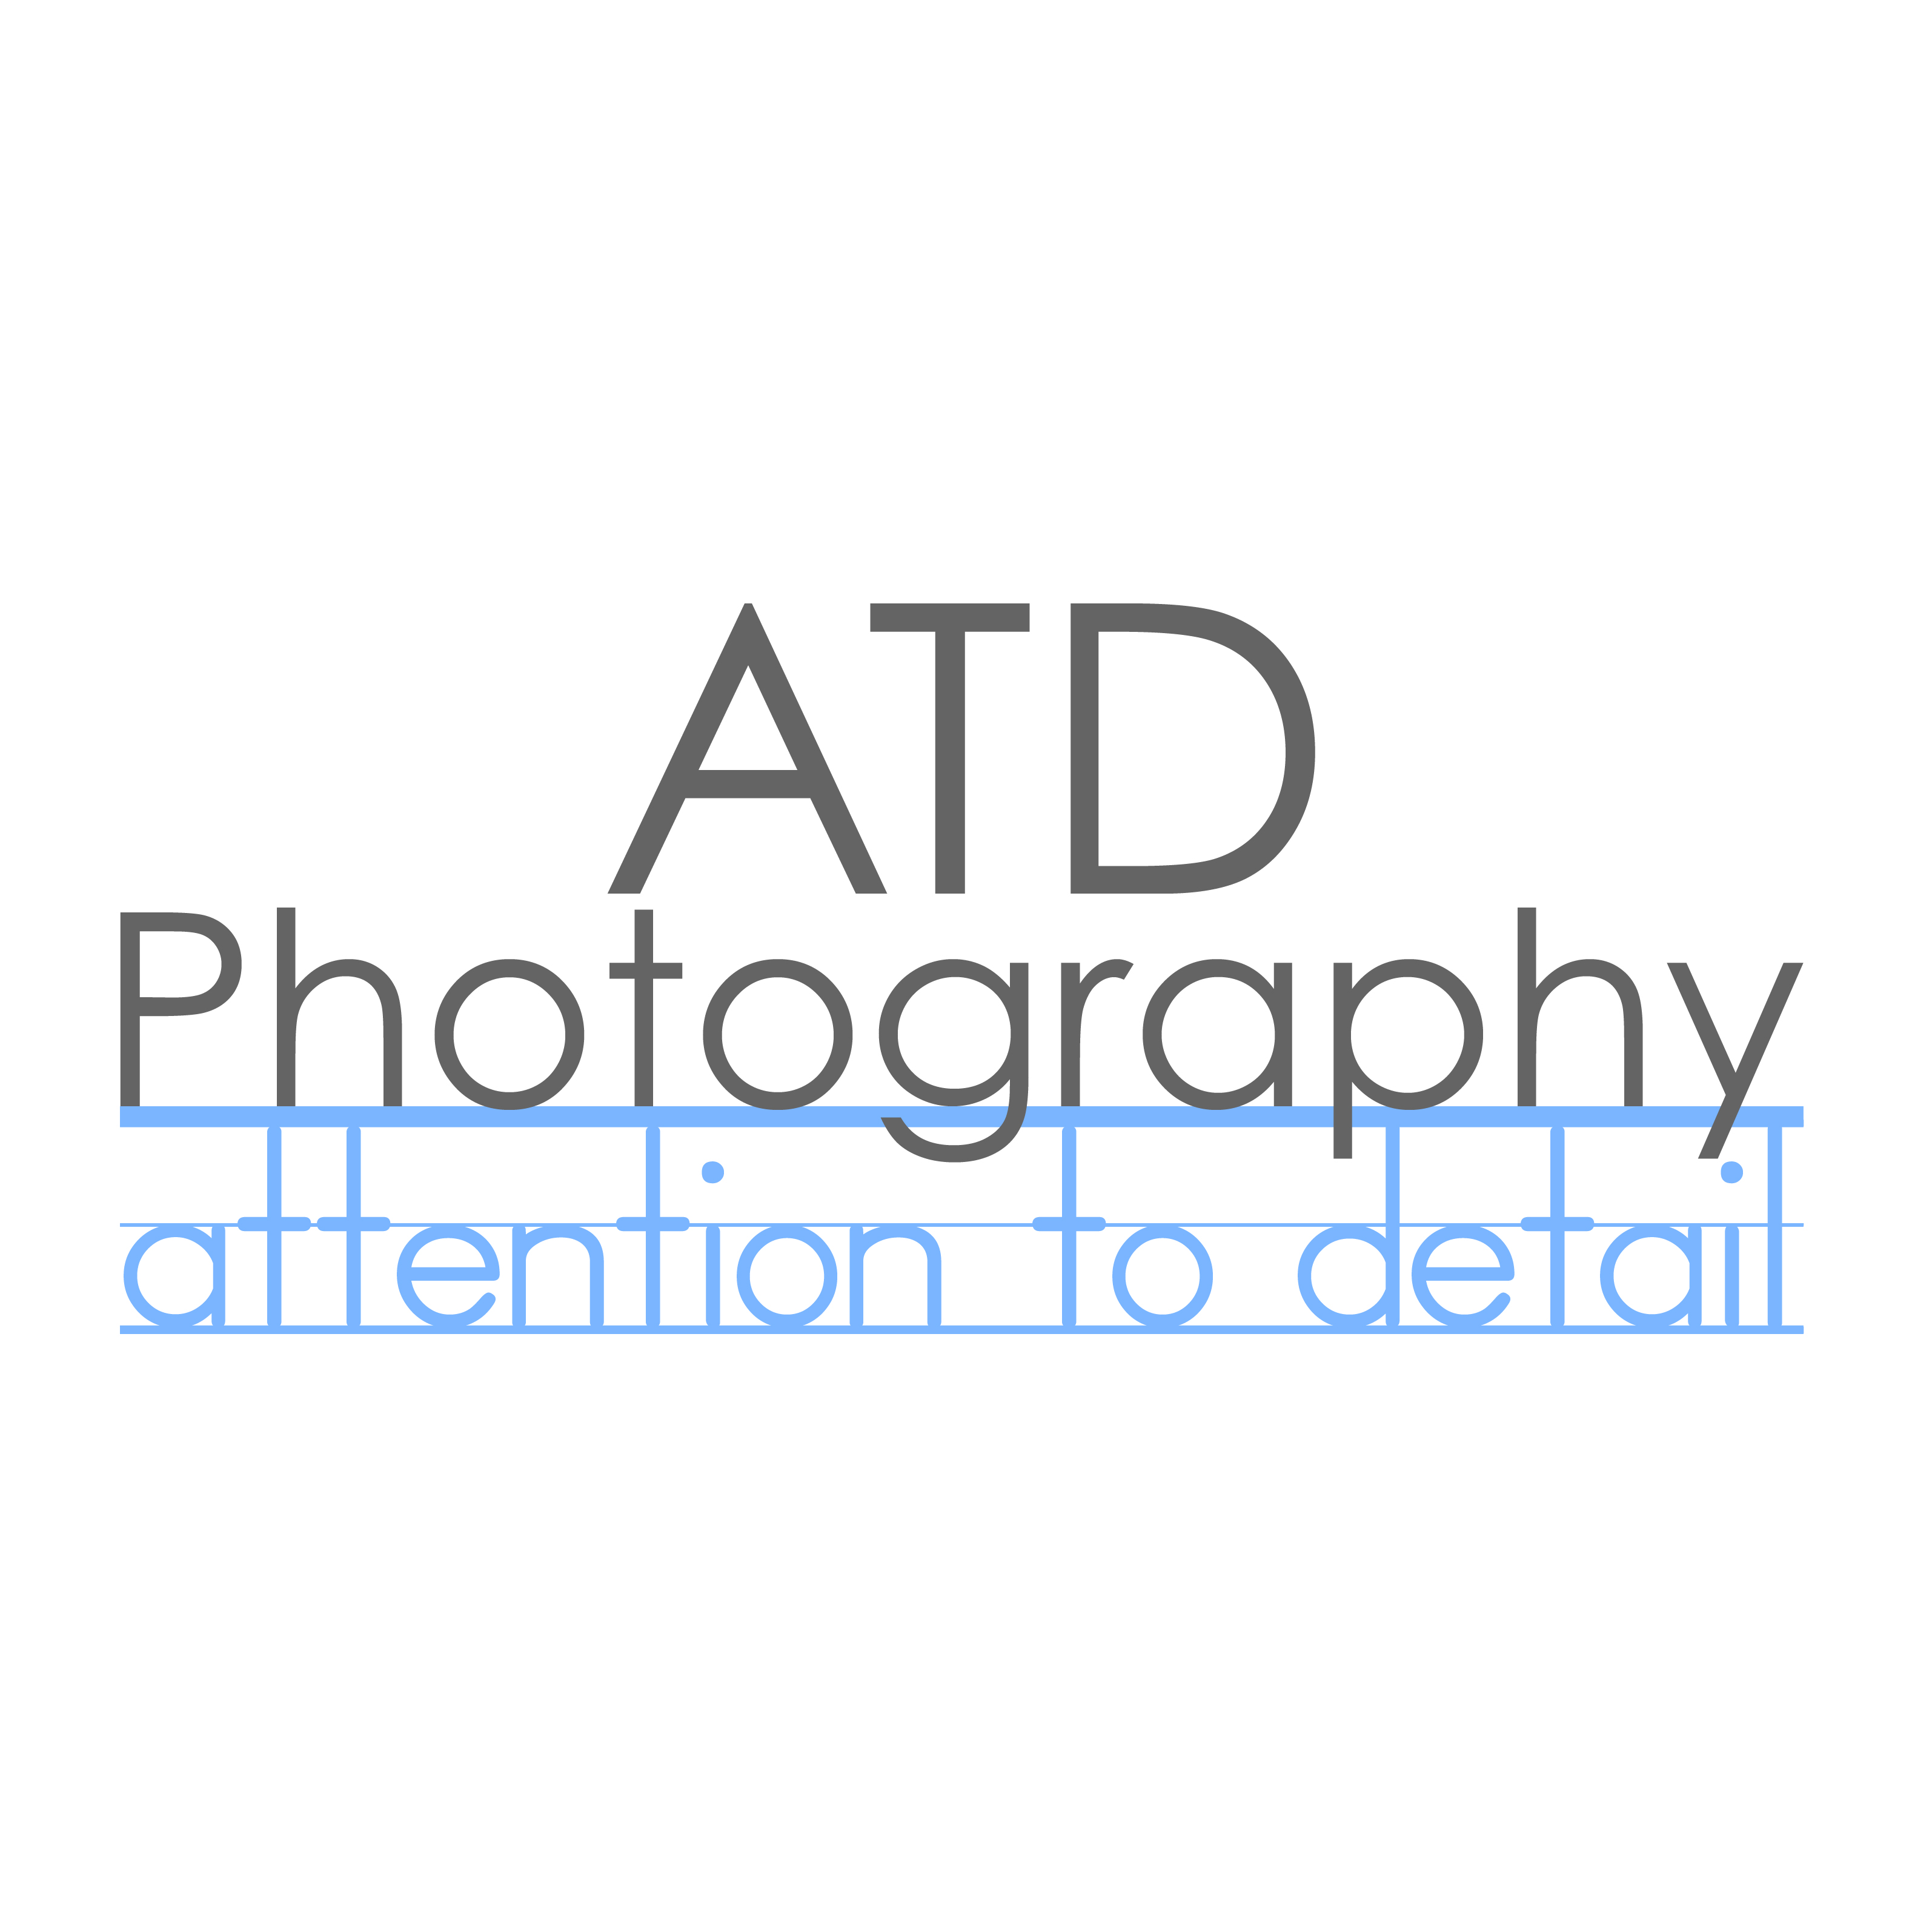 ATD Photography